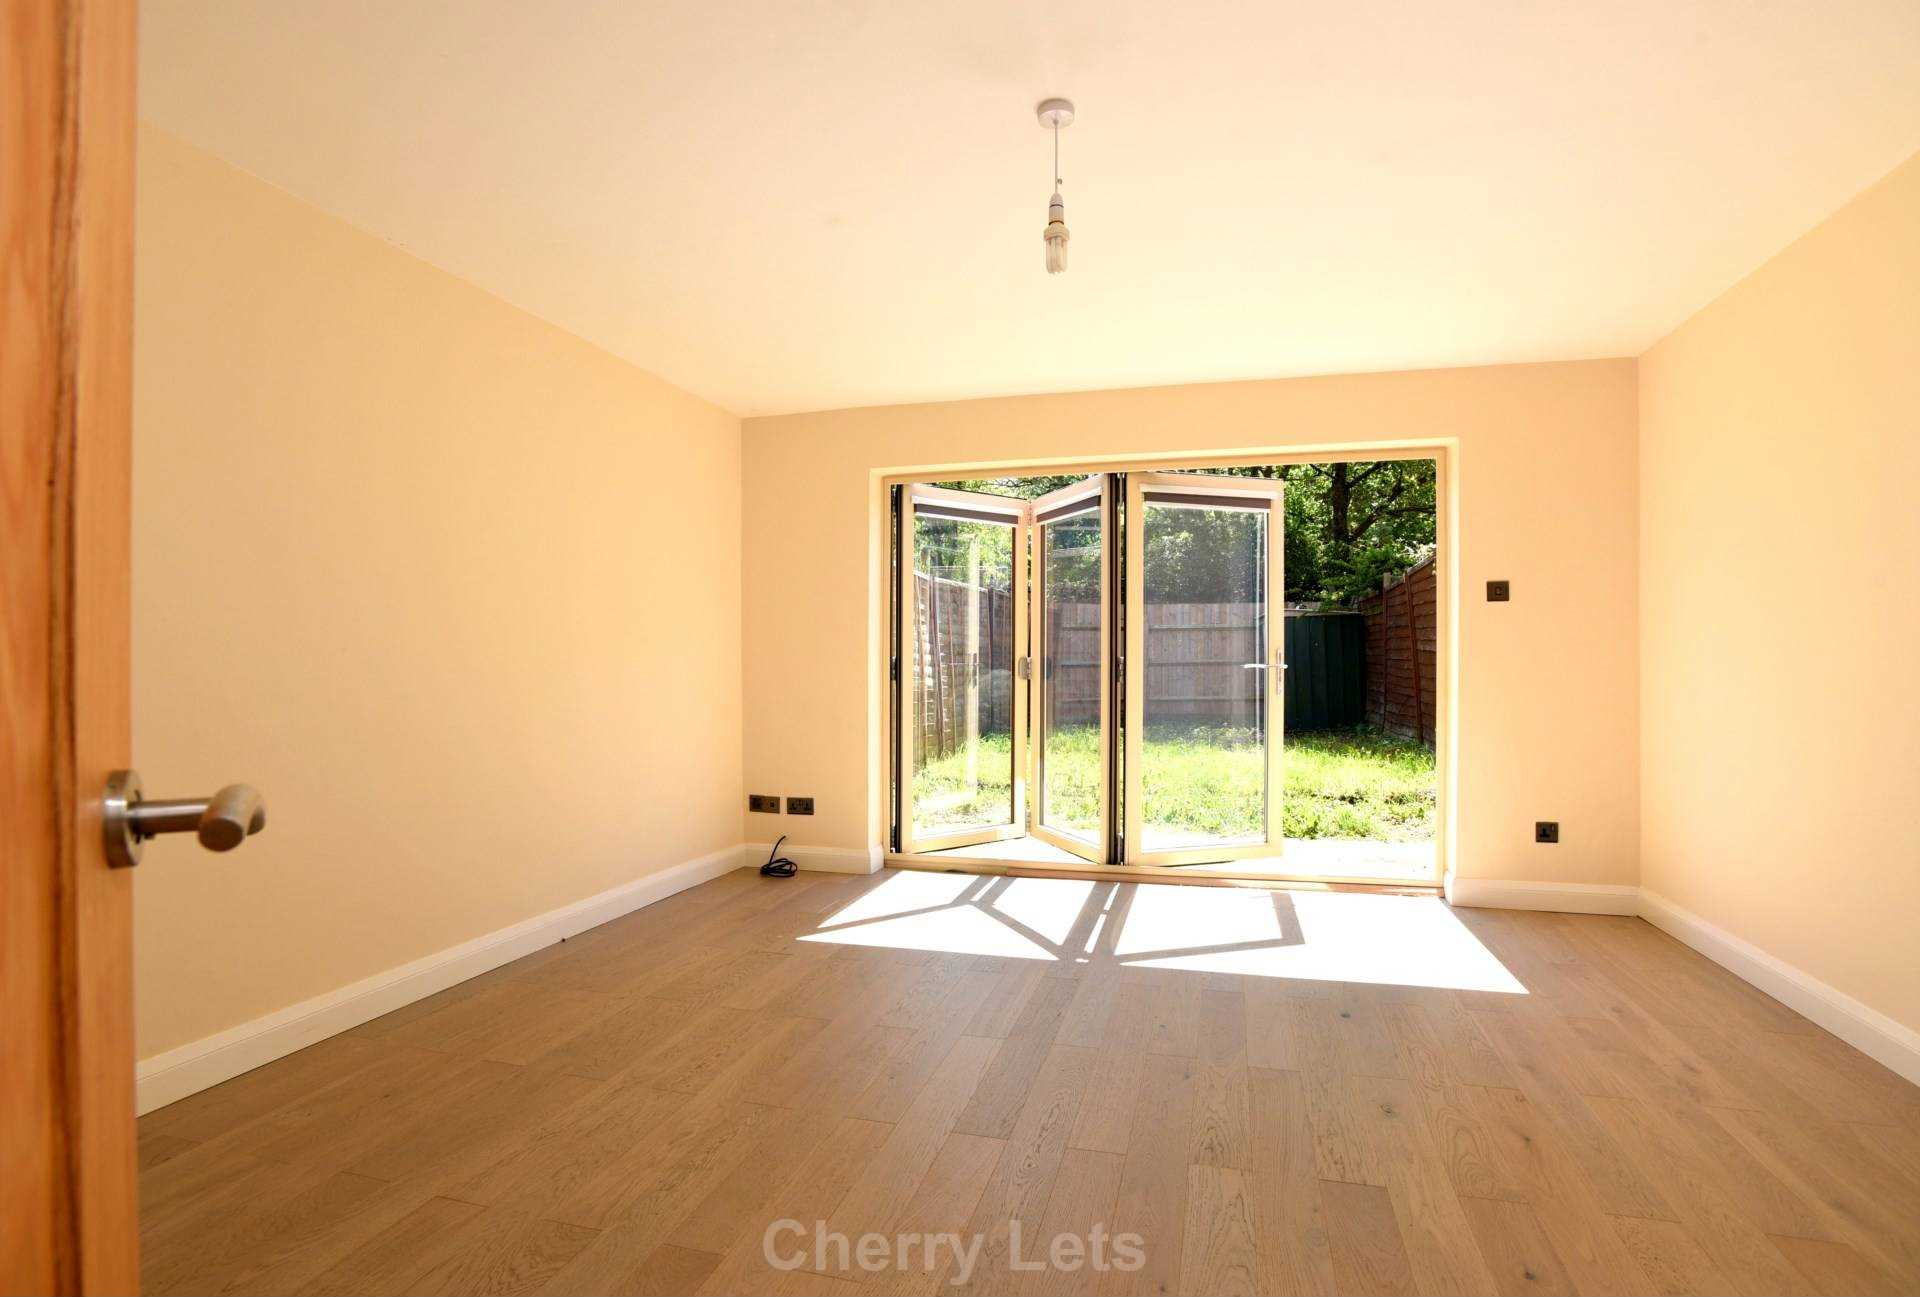 3 bed terraced house to rent in Keytes Close, Adderbury, OX17 3